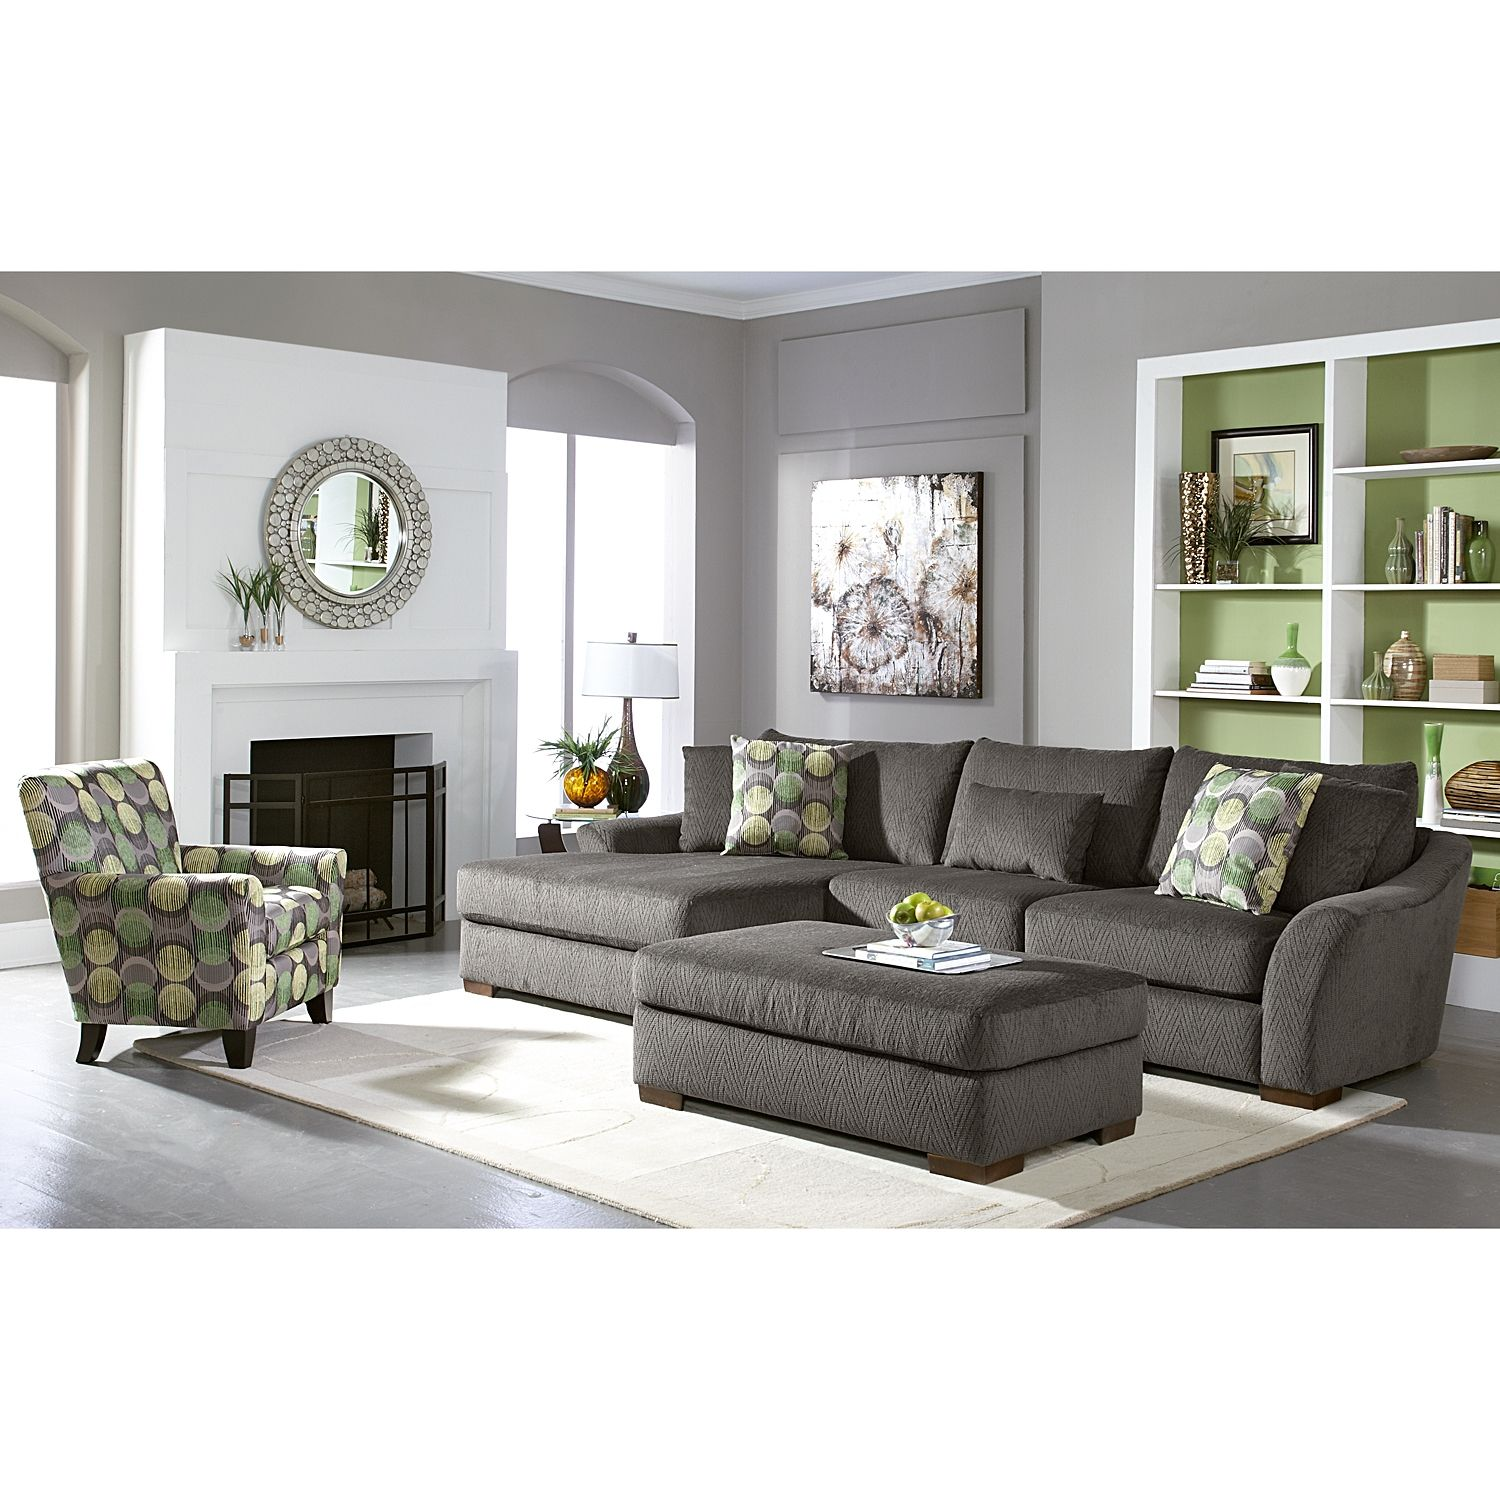 Living Room Pc Exterior Beauteous Living Room Furniture  Oasis 2 Pcsectional  For The Home . Decorating Design